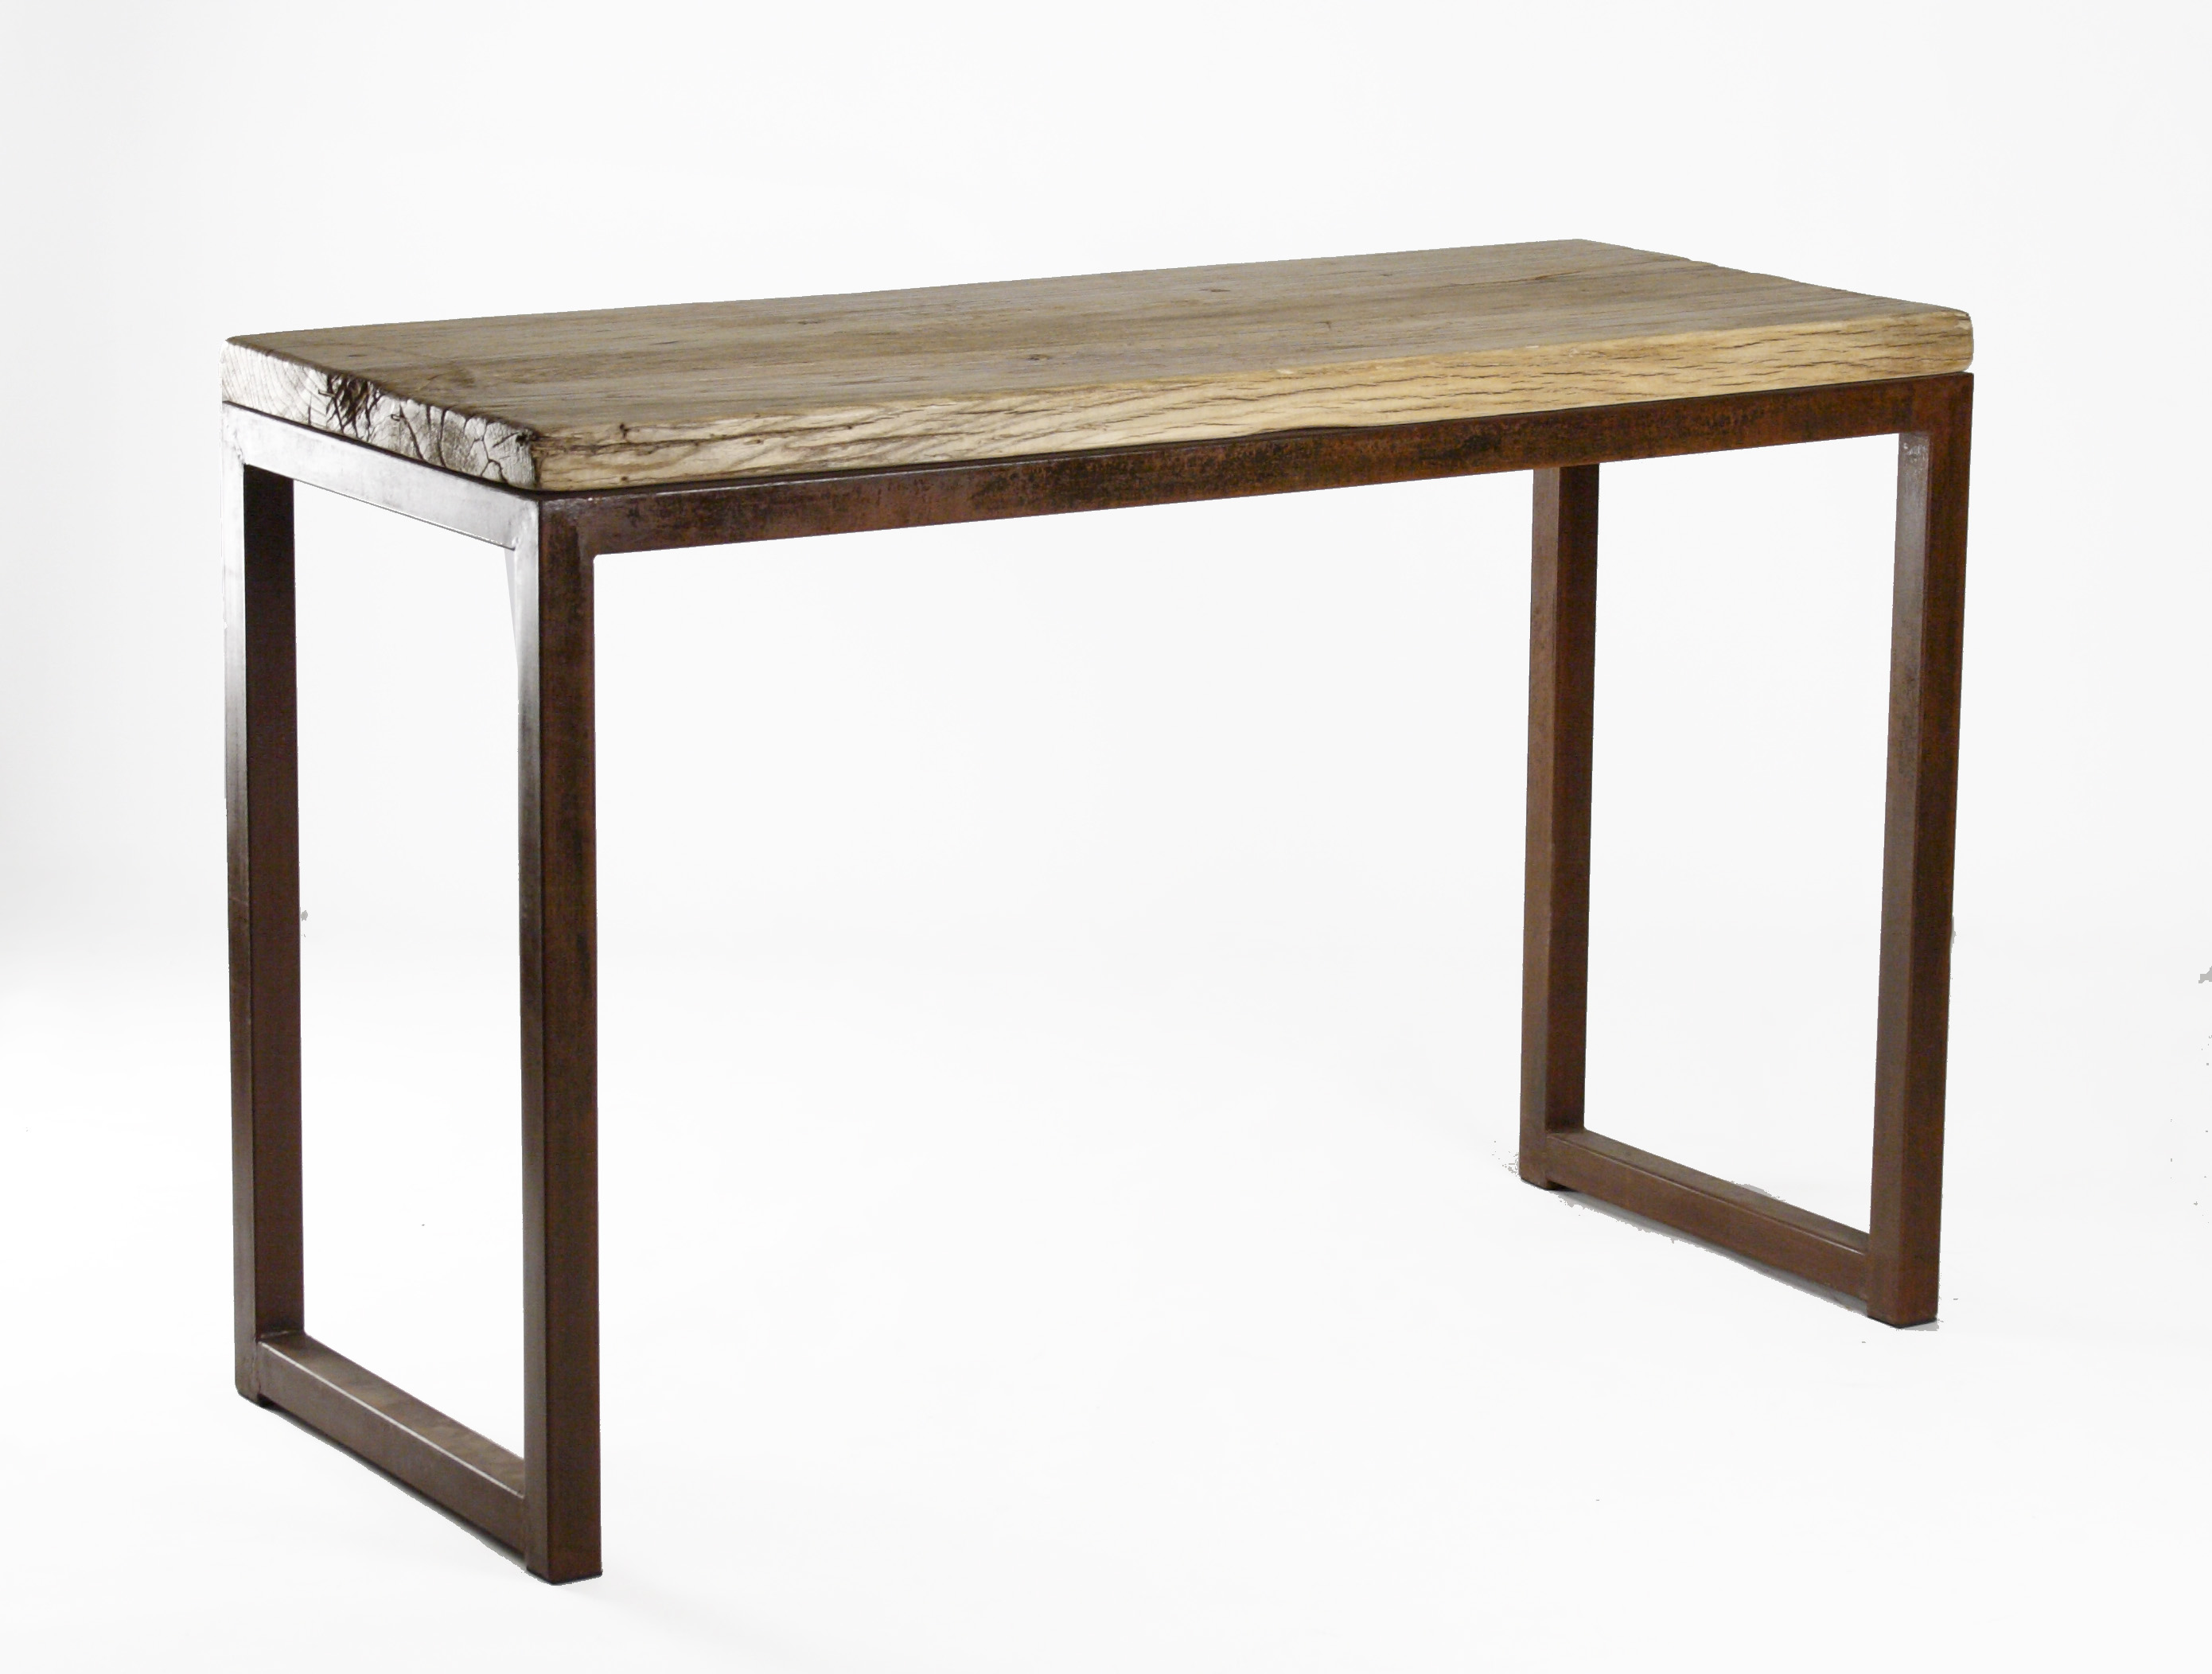 Modern Rustic Reclaimed Wood Console